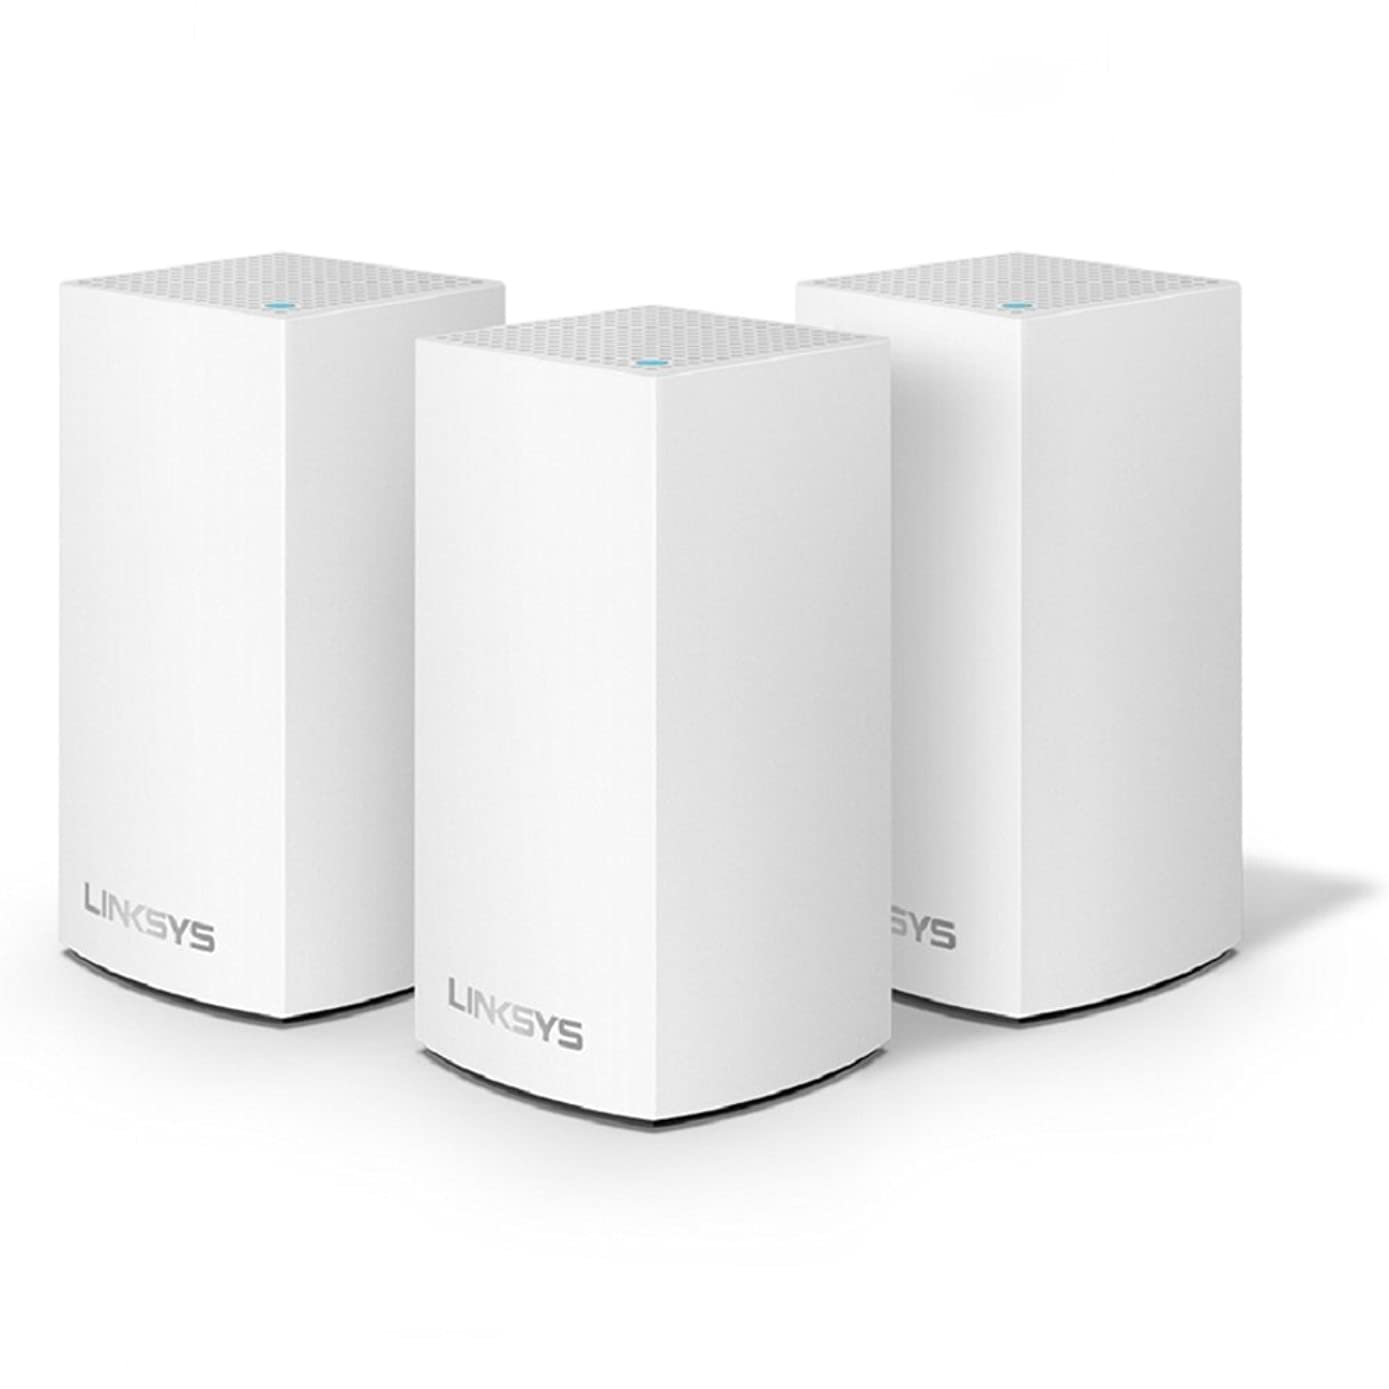 Linksys Velop Home Mesh WiFi System – WiFi Router/WiFi Extender for Whole-Home Mesh Network (3-pack, White)